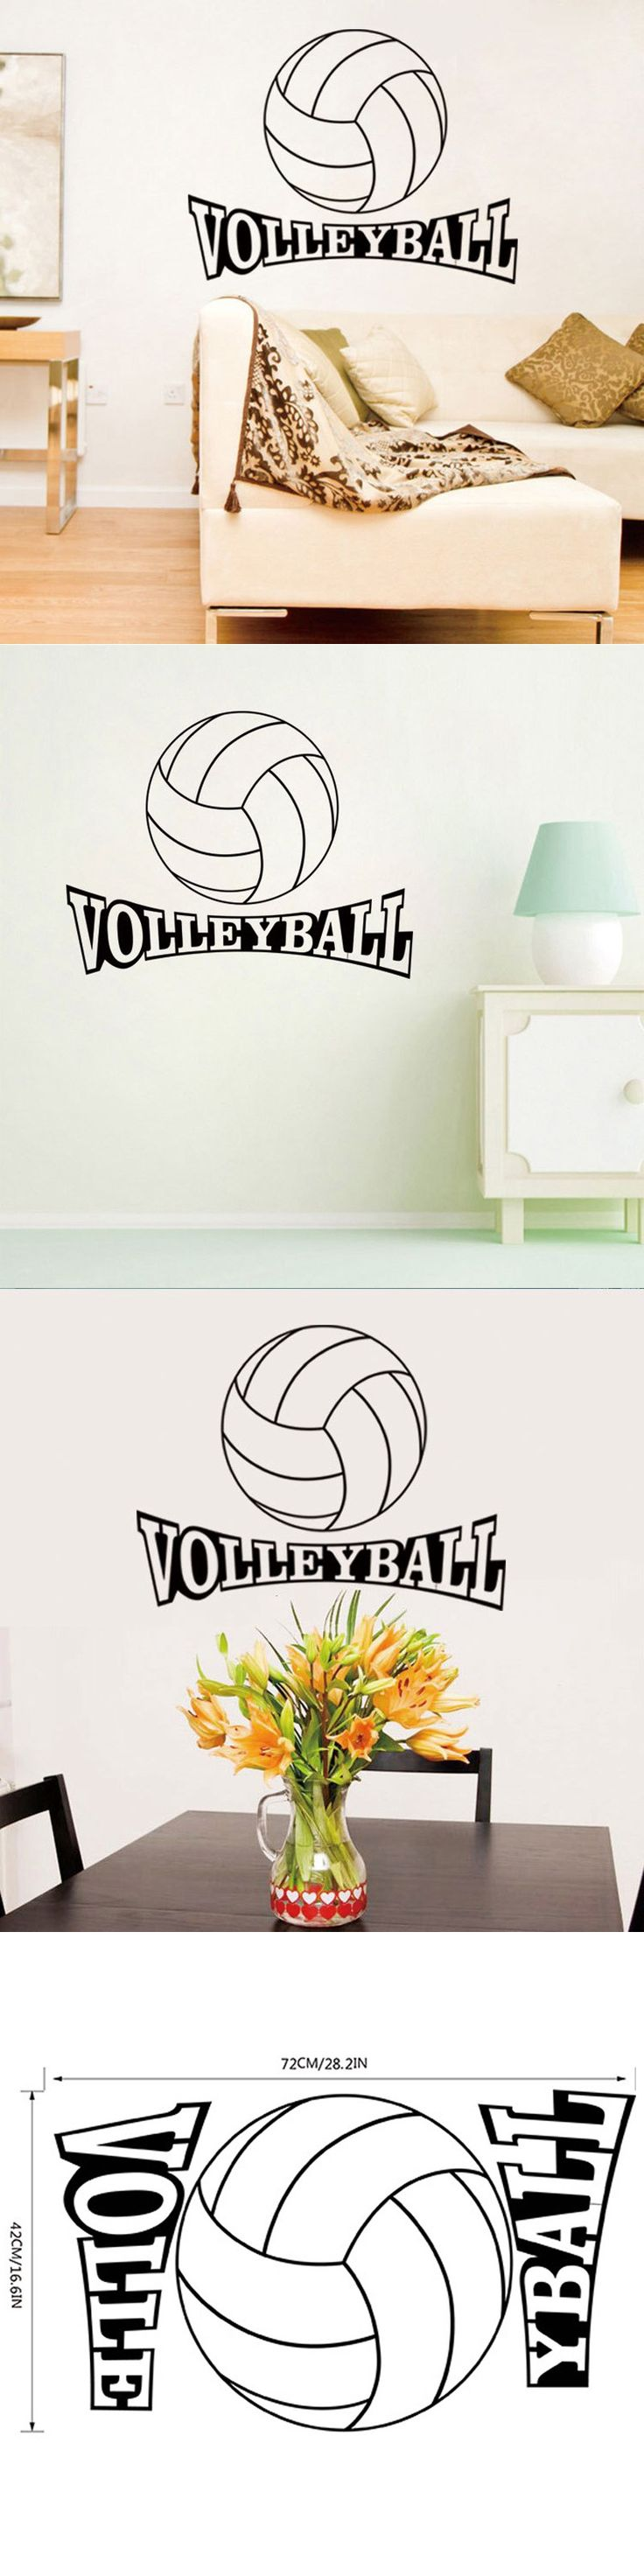 68 best decals images on pinterest vinyl decals wall stickers 2016 newest sport volleyball home decor creative wall stickers parede removable decorative home decals adesivo wallpapers